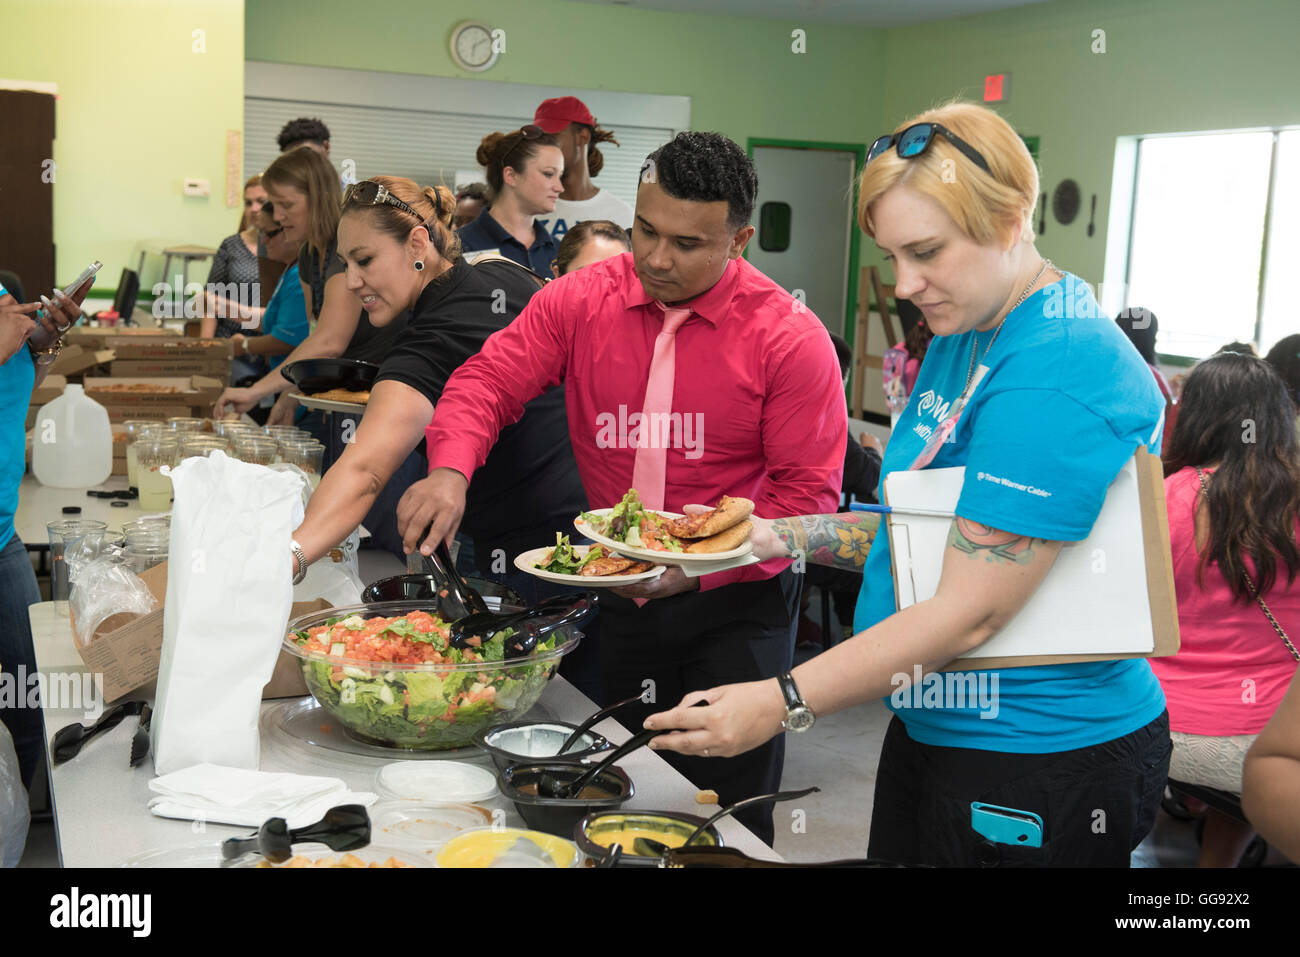 Adult volunteers serve themselves salad in cafeteria during after-school activity at middle school in Austin, Texas - Stock Image